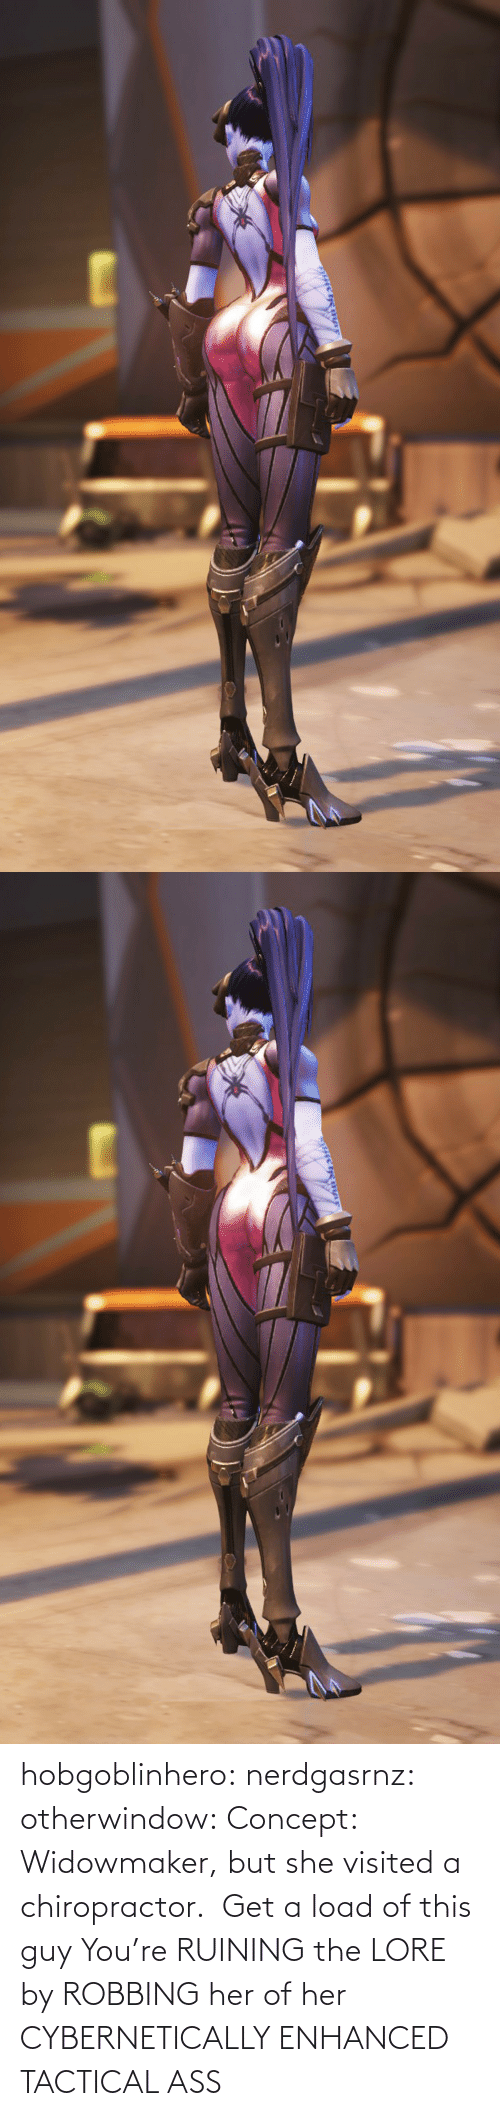 concept: hobgoblinhero: nerdgasrnz:  otherwindow: Concept: Widowmaker, but she visited a chiropractor.  Get a load of this guy  You're RUINING the LORE by ROBBING her of her CYBERNETICALLY ENHANCED TACTICAL ASS